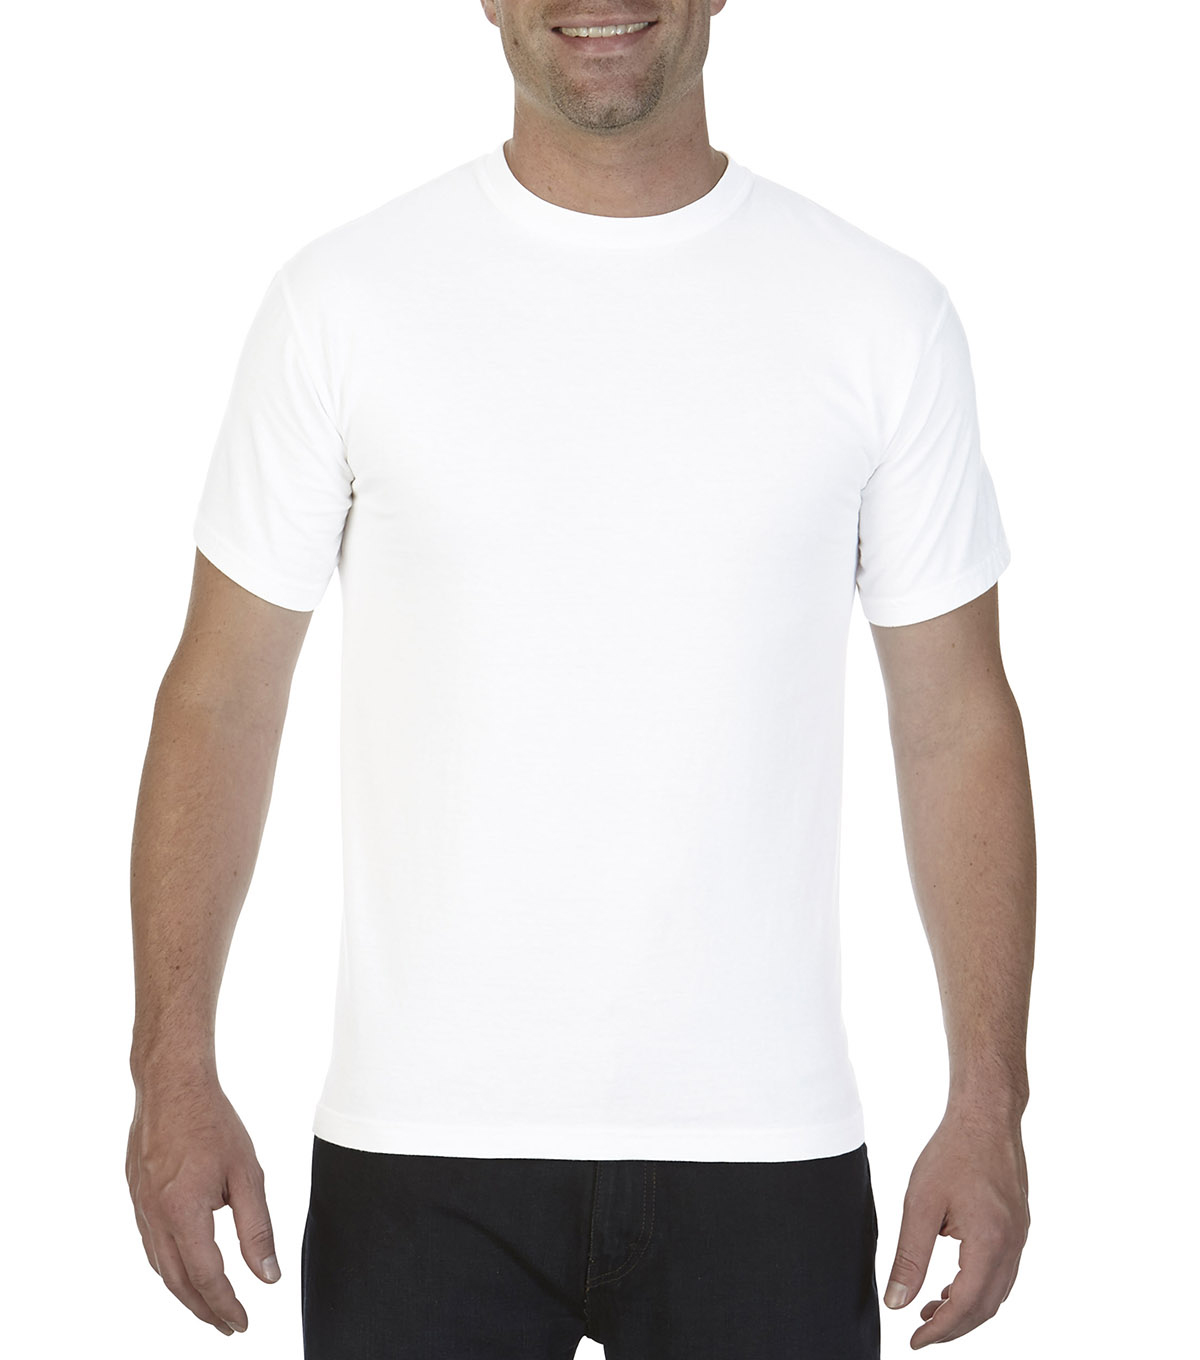 Adult Comfort Colors T-shirt-Medium, White